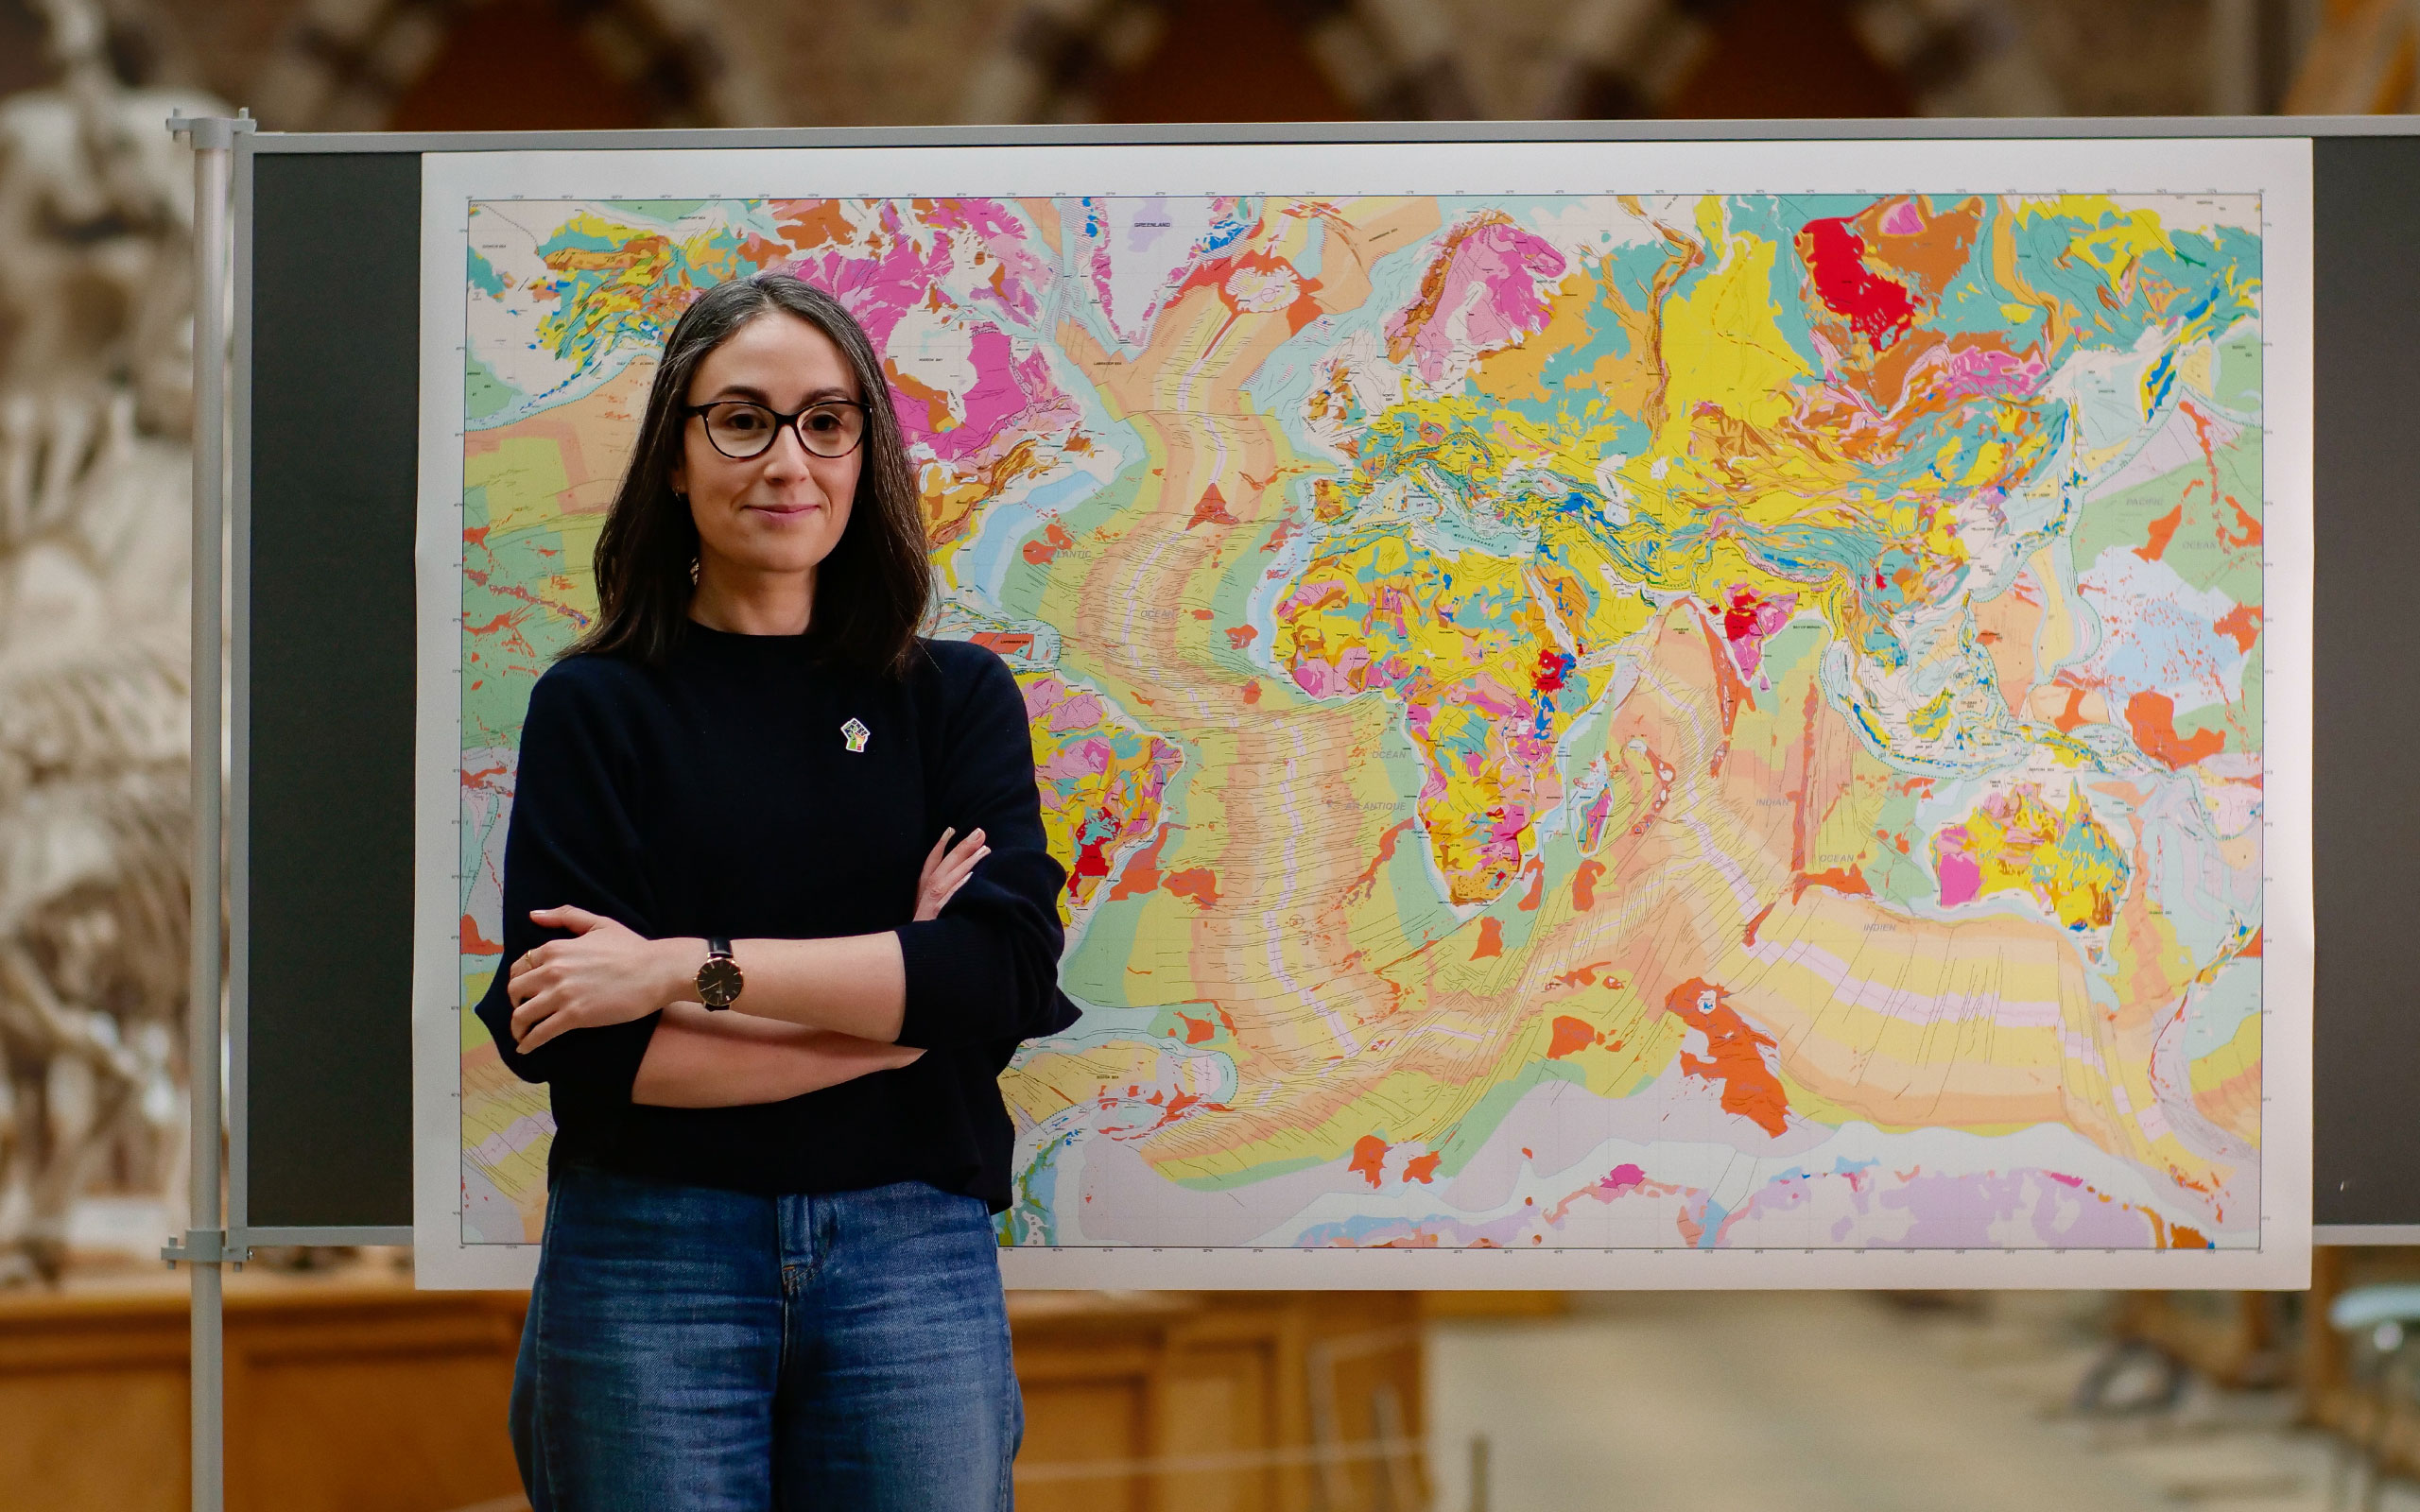 A woman in front of a pastel-colored map.